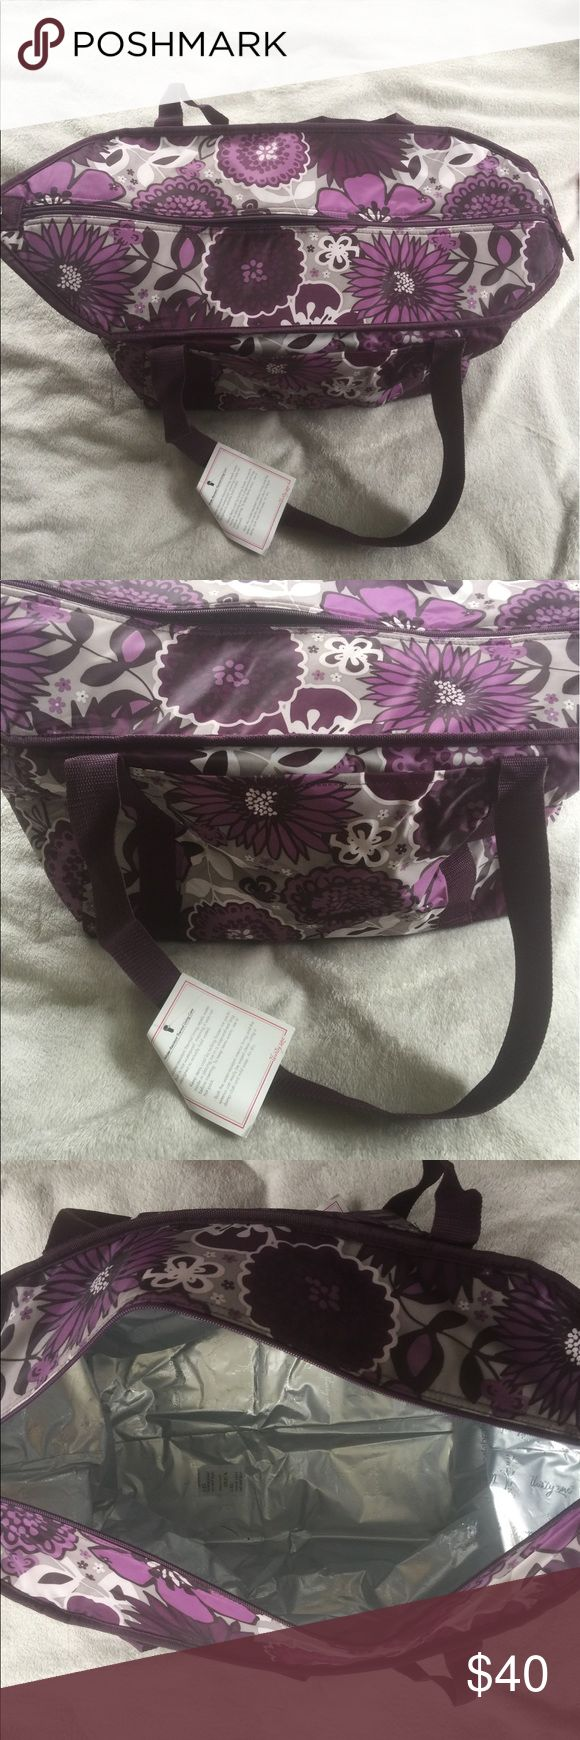 Purple Thirty-One Thermal fresh market thermal, brand new with tags, works great, never used, spacious, durable, perfect for grocery shopping Thirty-One Bags